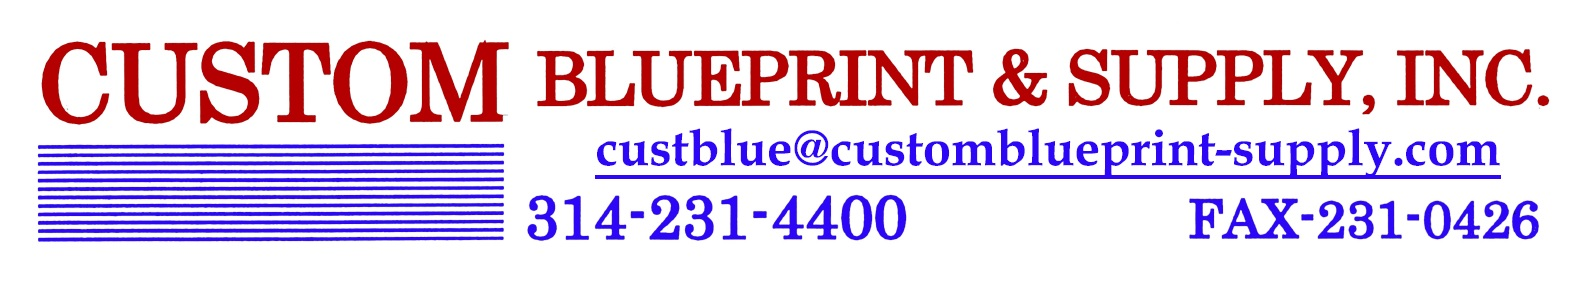 Custom Blueprint & Supply